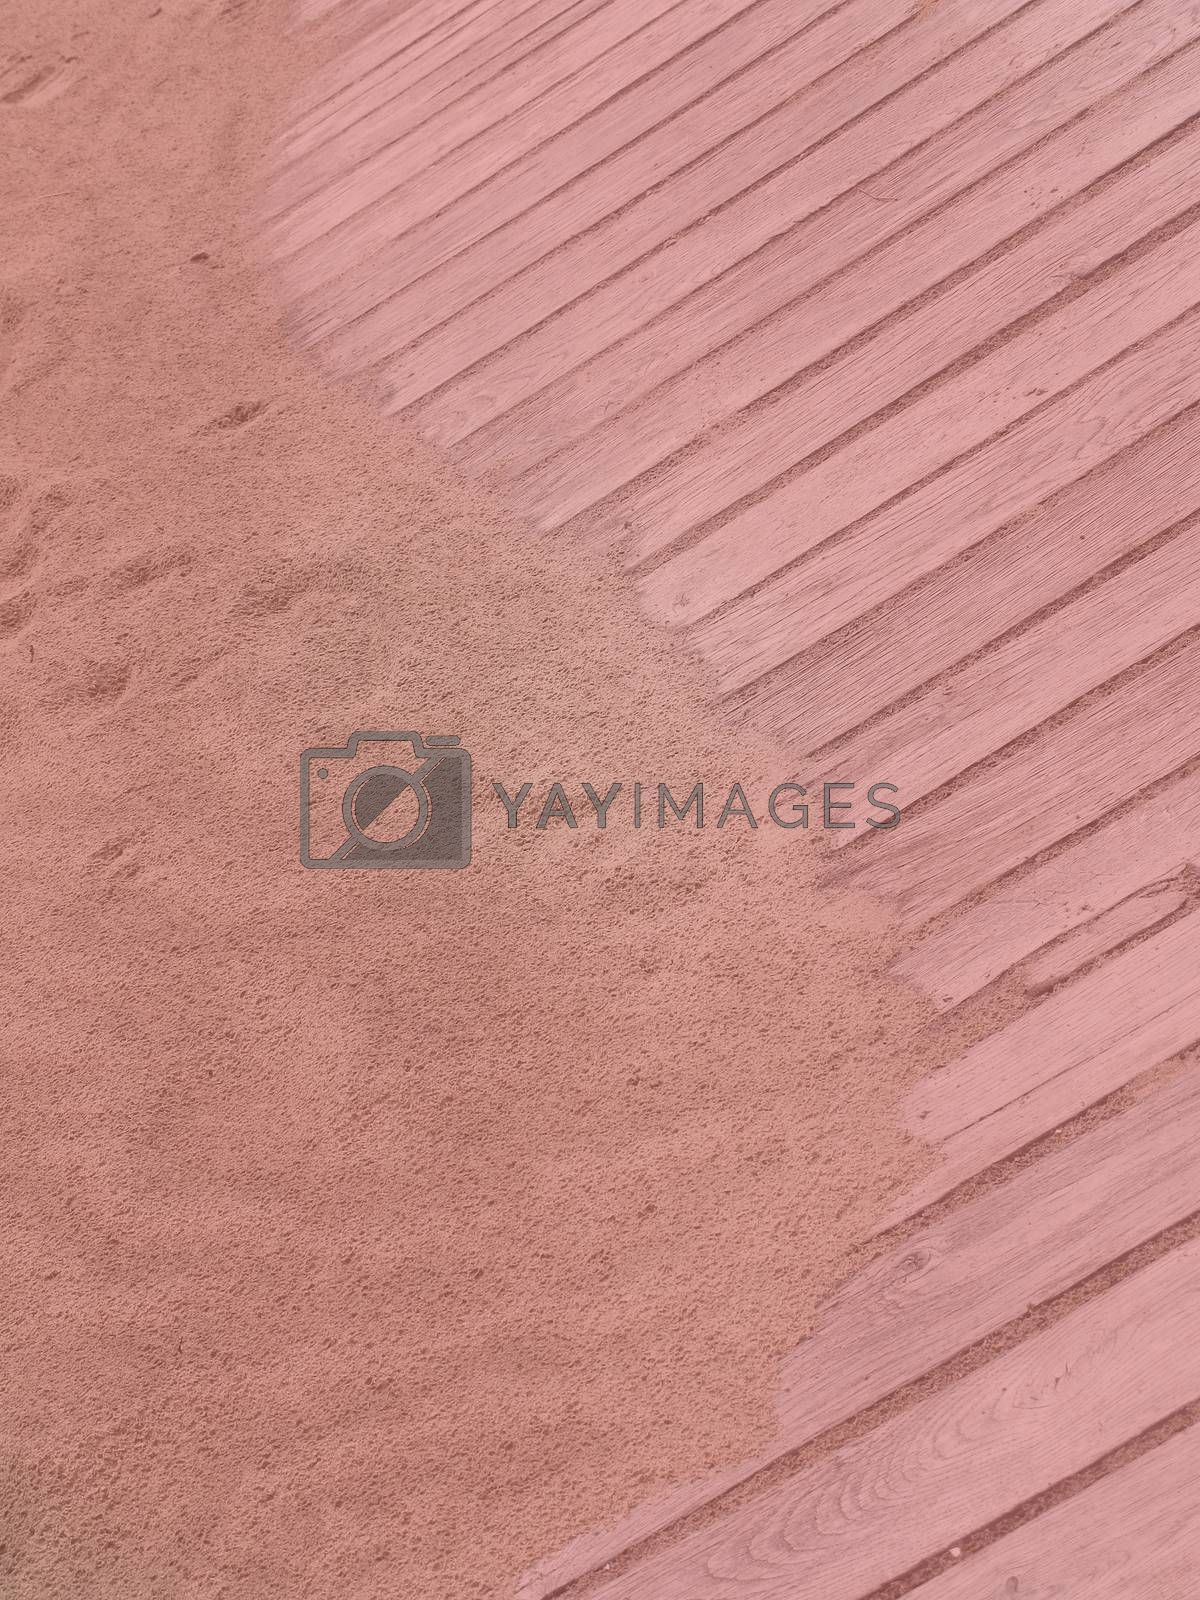 Rustic Yin Yang shape on sandy boardwalk vertical image toned in trend color Living Coral.